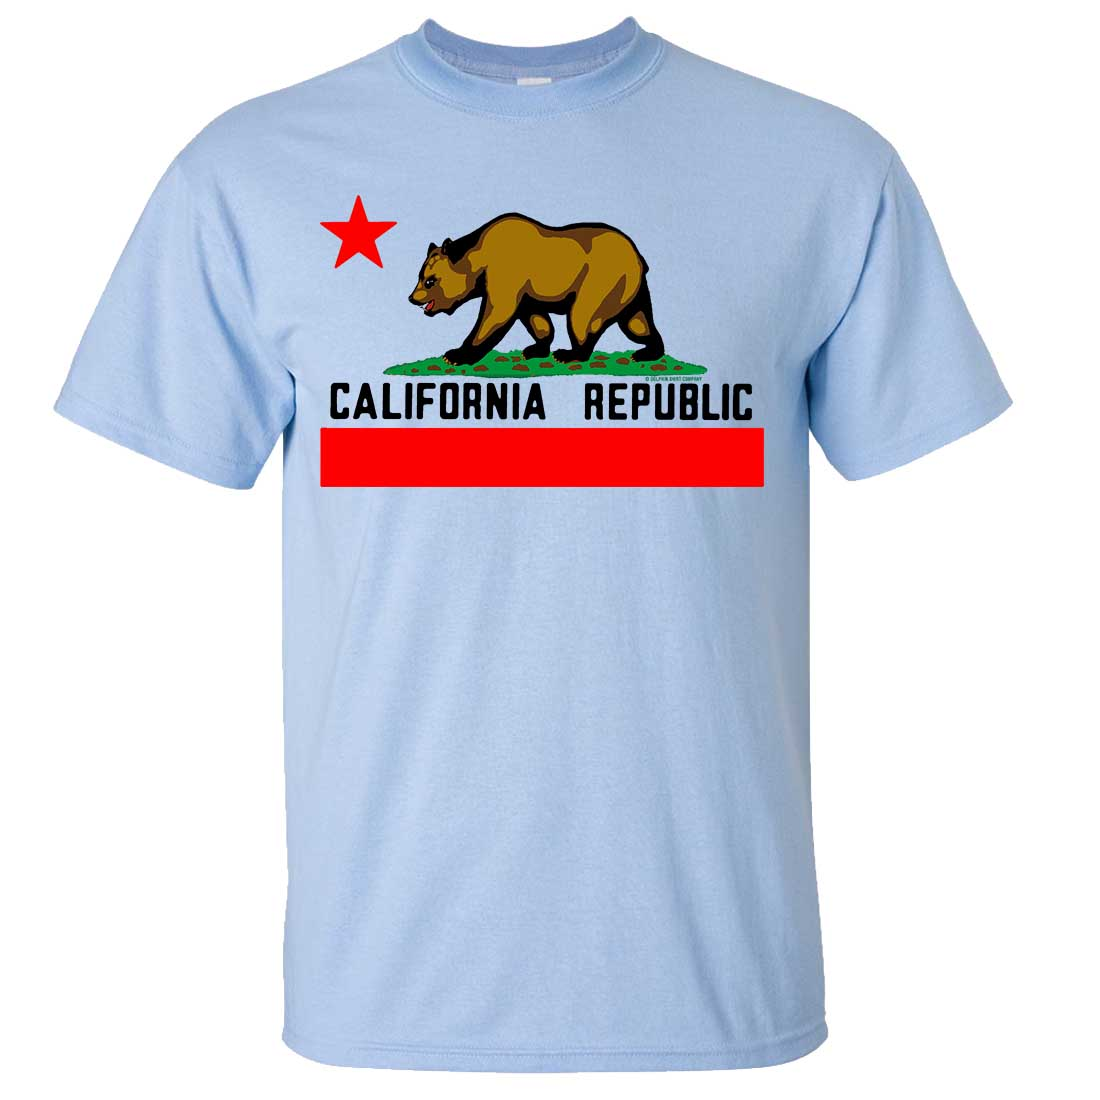 california republic borderless bear flag black text asst colors t shirt tee ebay. Black Bedroom Furniture Sets. Home Design Ideas